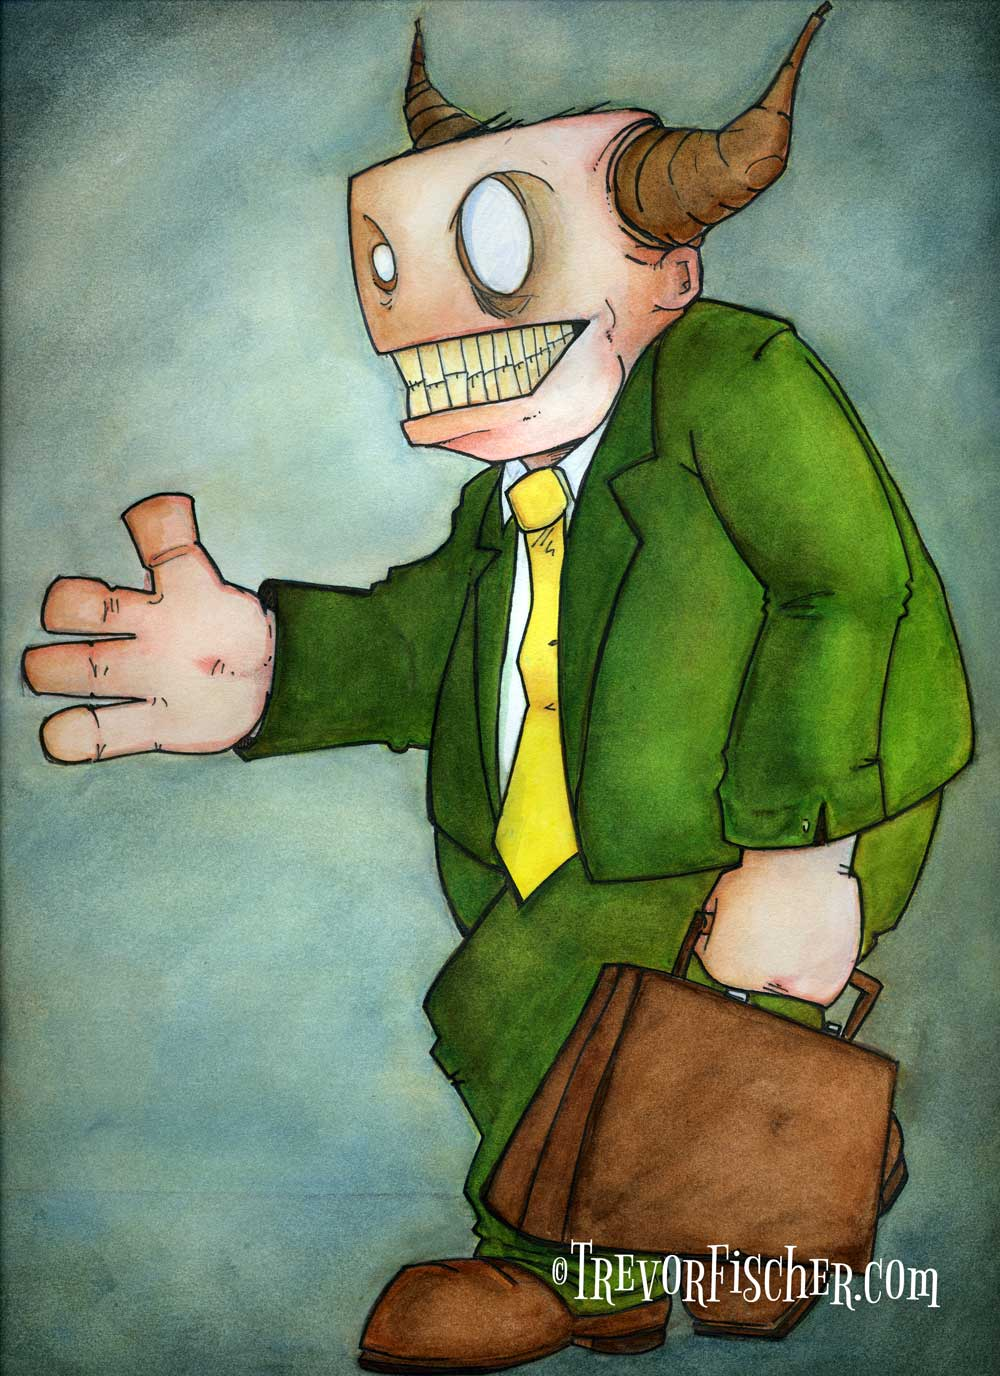 Painting of a monster in a suit extending his hand to shake